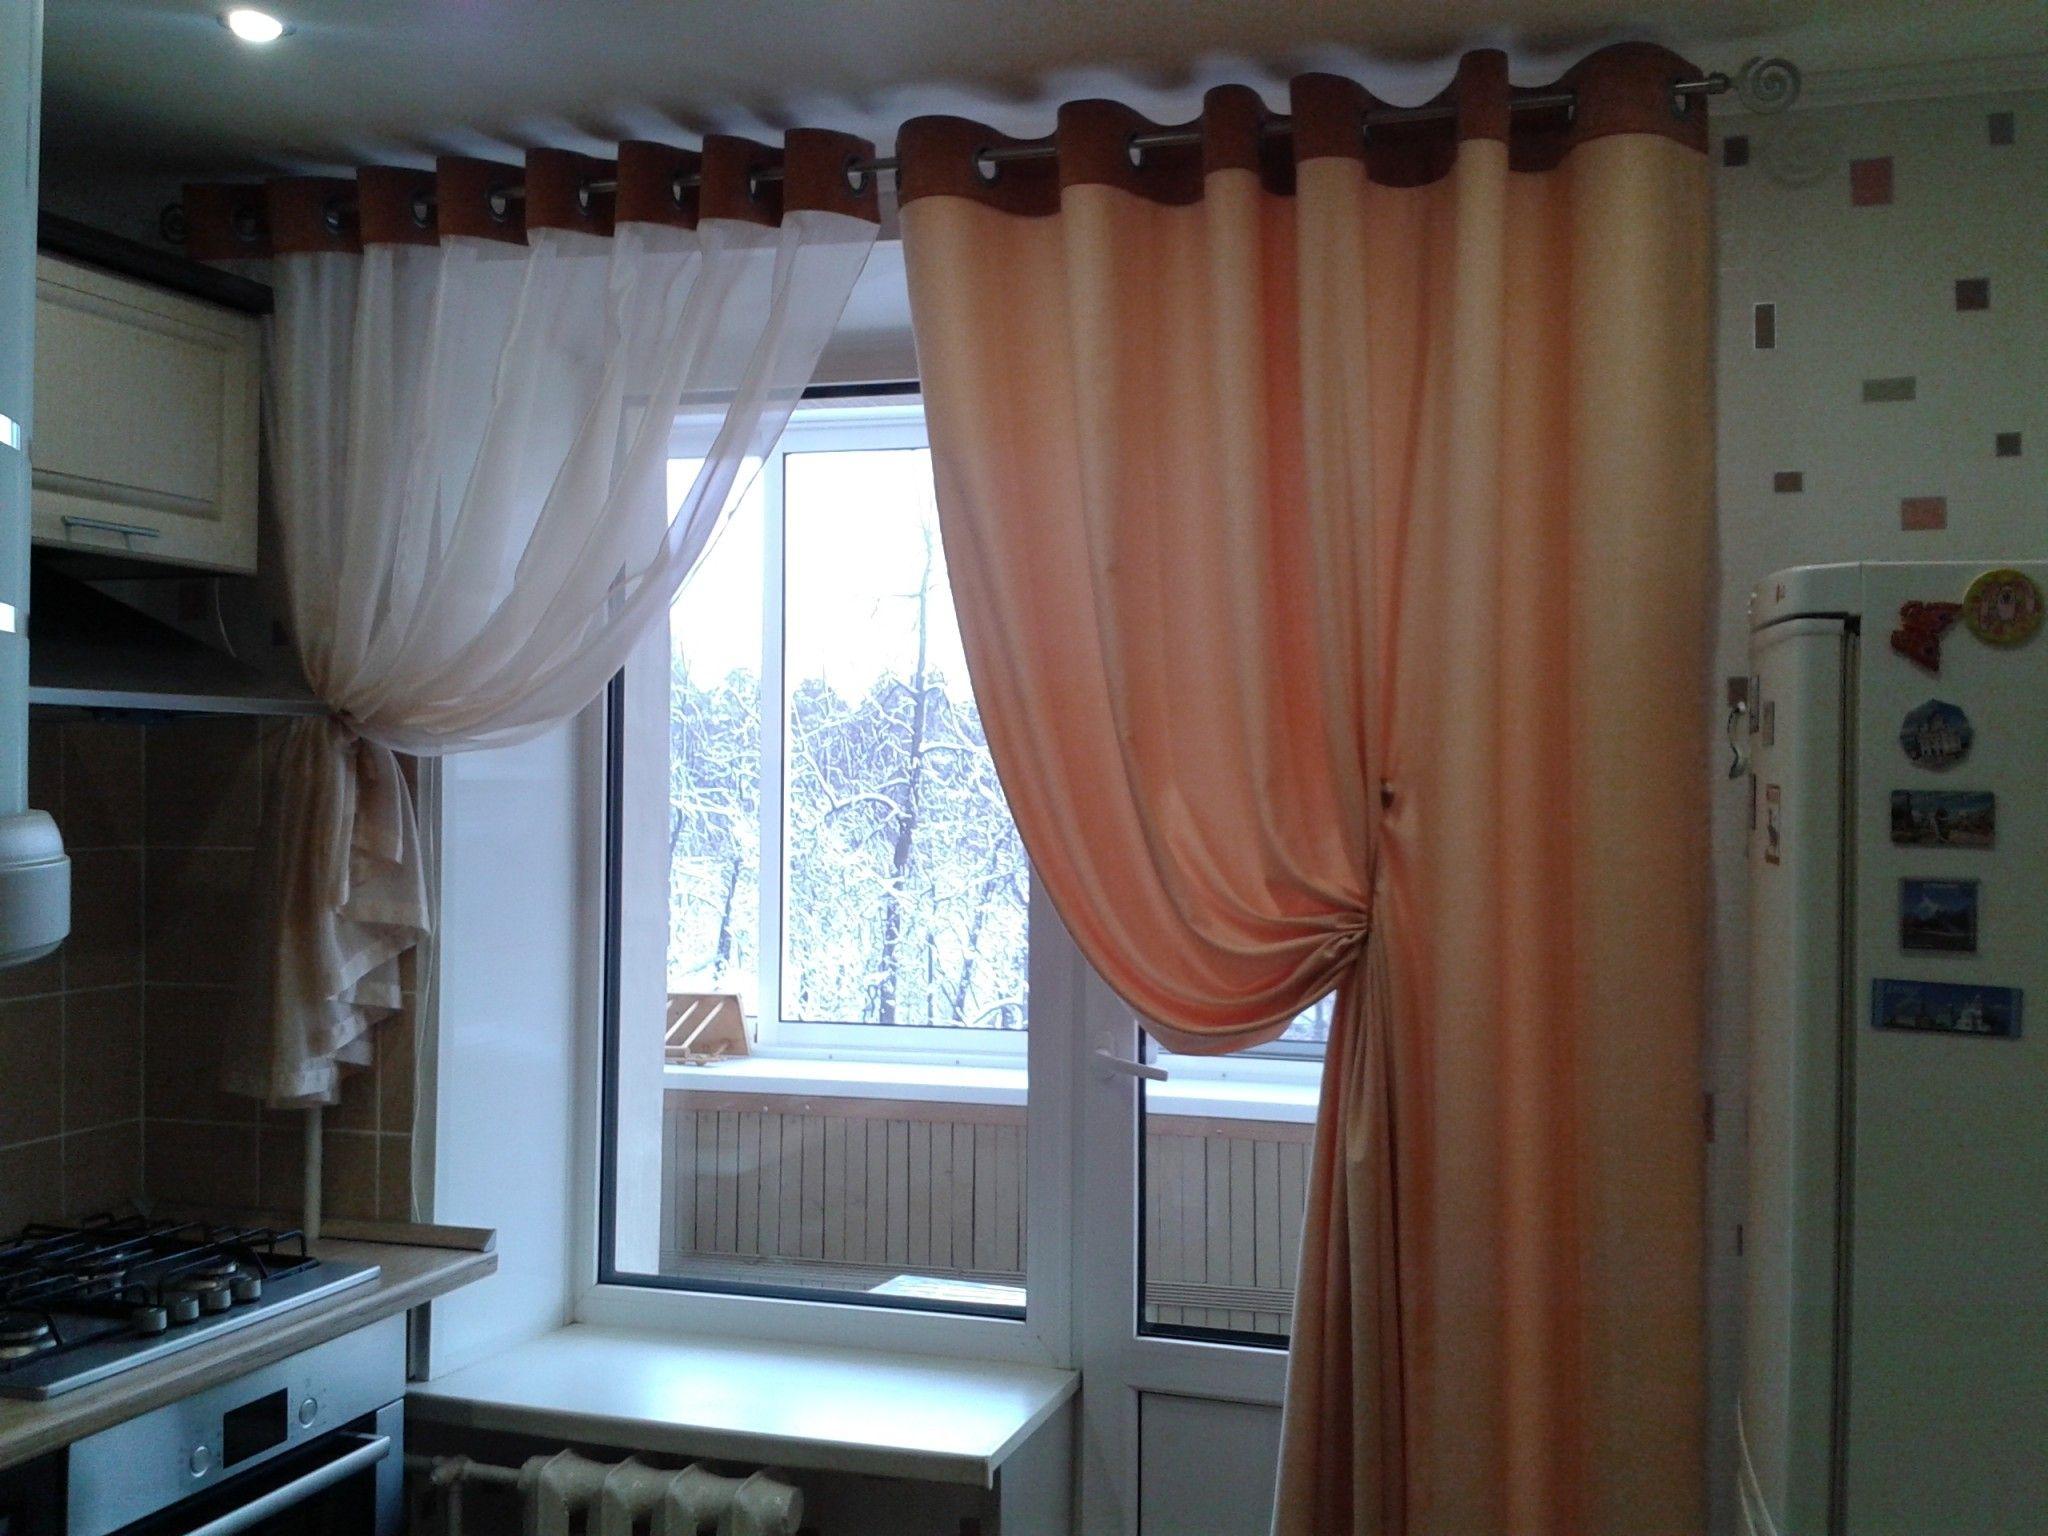 Kitchen Curtains Design Photos, Types and DIY Advice. Good looking type with the folds